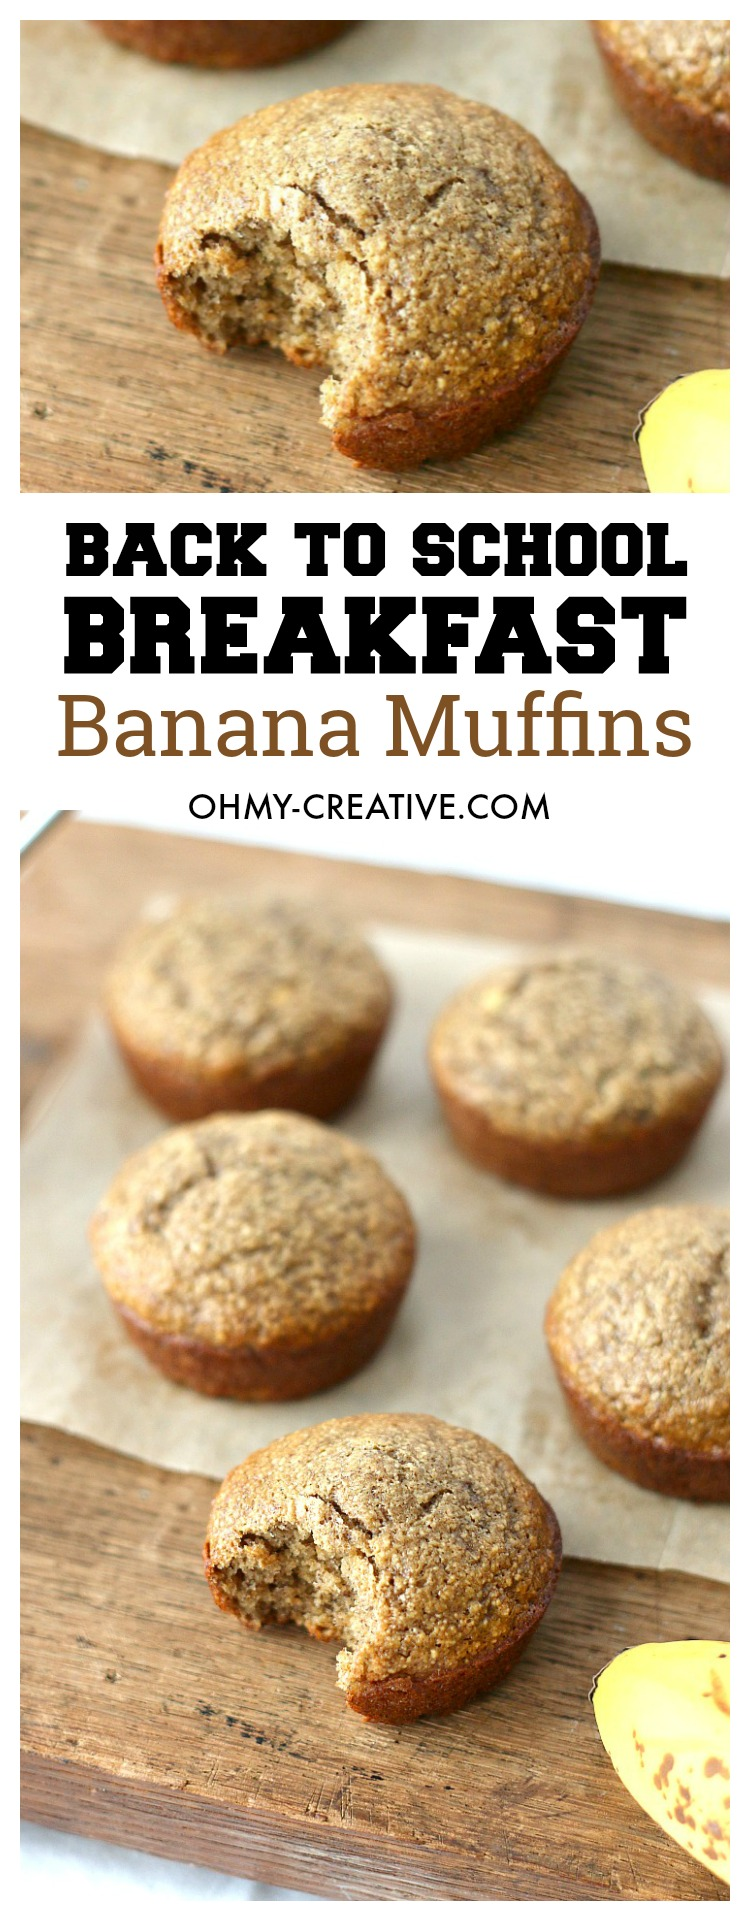 Banana Muffin Recipe | OHMY-CREATIVE.COM | Banana Muffins | Healthy Banana Muffins | Banana Muffins Recipe | Easy Banana Muffins | Breakfast Muffins | Breakfast ideas for Kids | Banana Muffins healthy | Back to school breakfast ideas